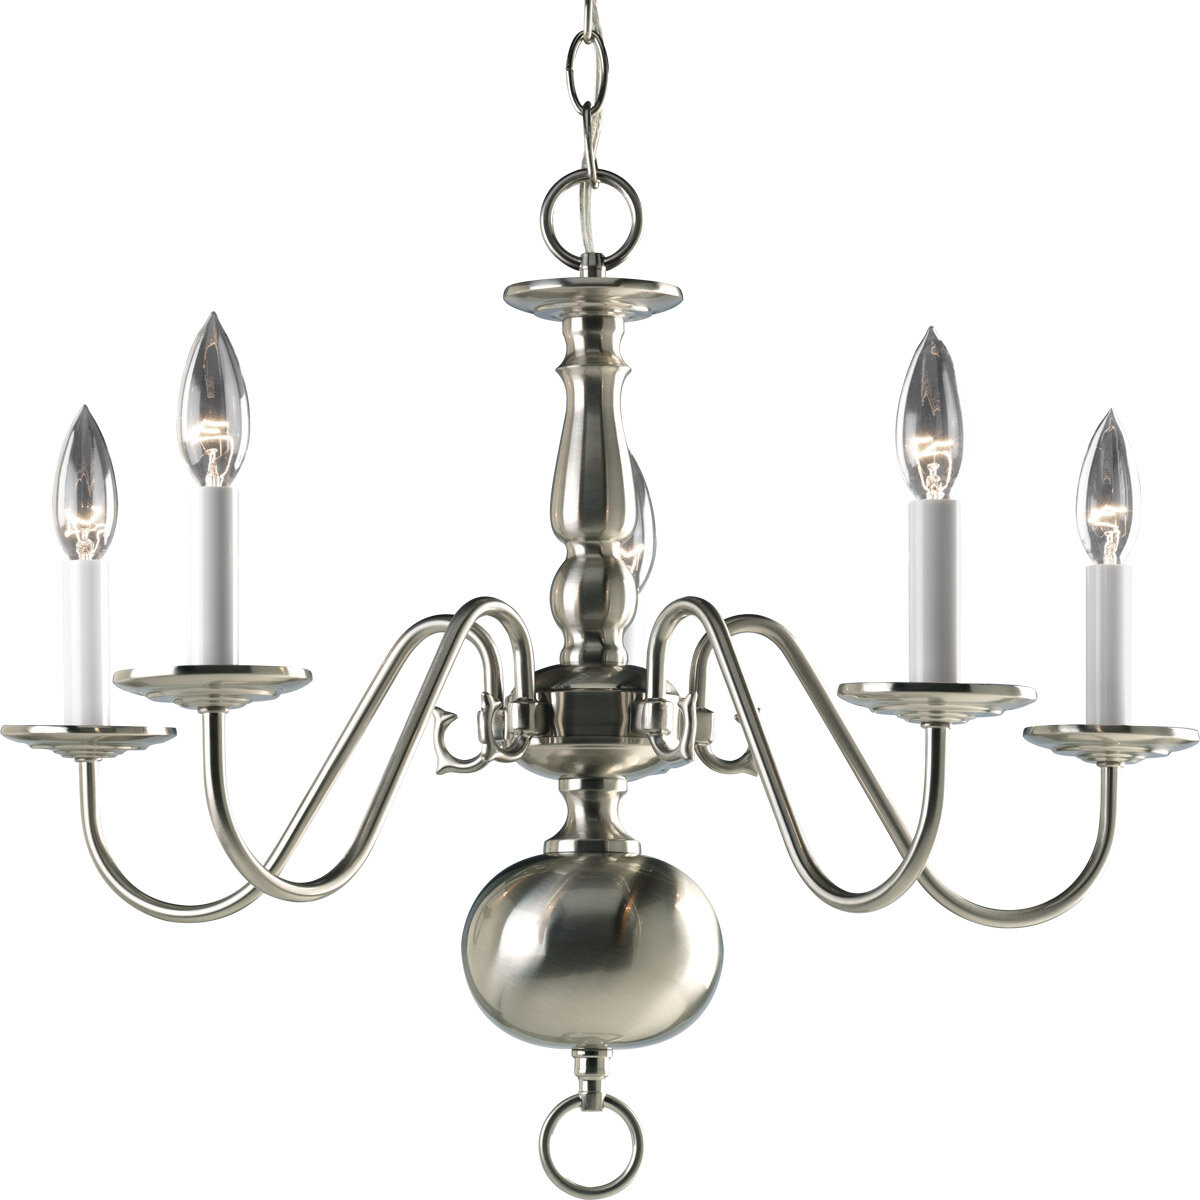 Alcott Hill Doyle 5 Light Candle Style Classic Traditional Chandelier Reviews Wayfair